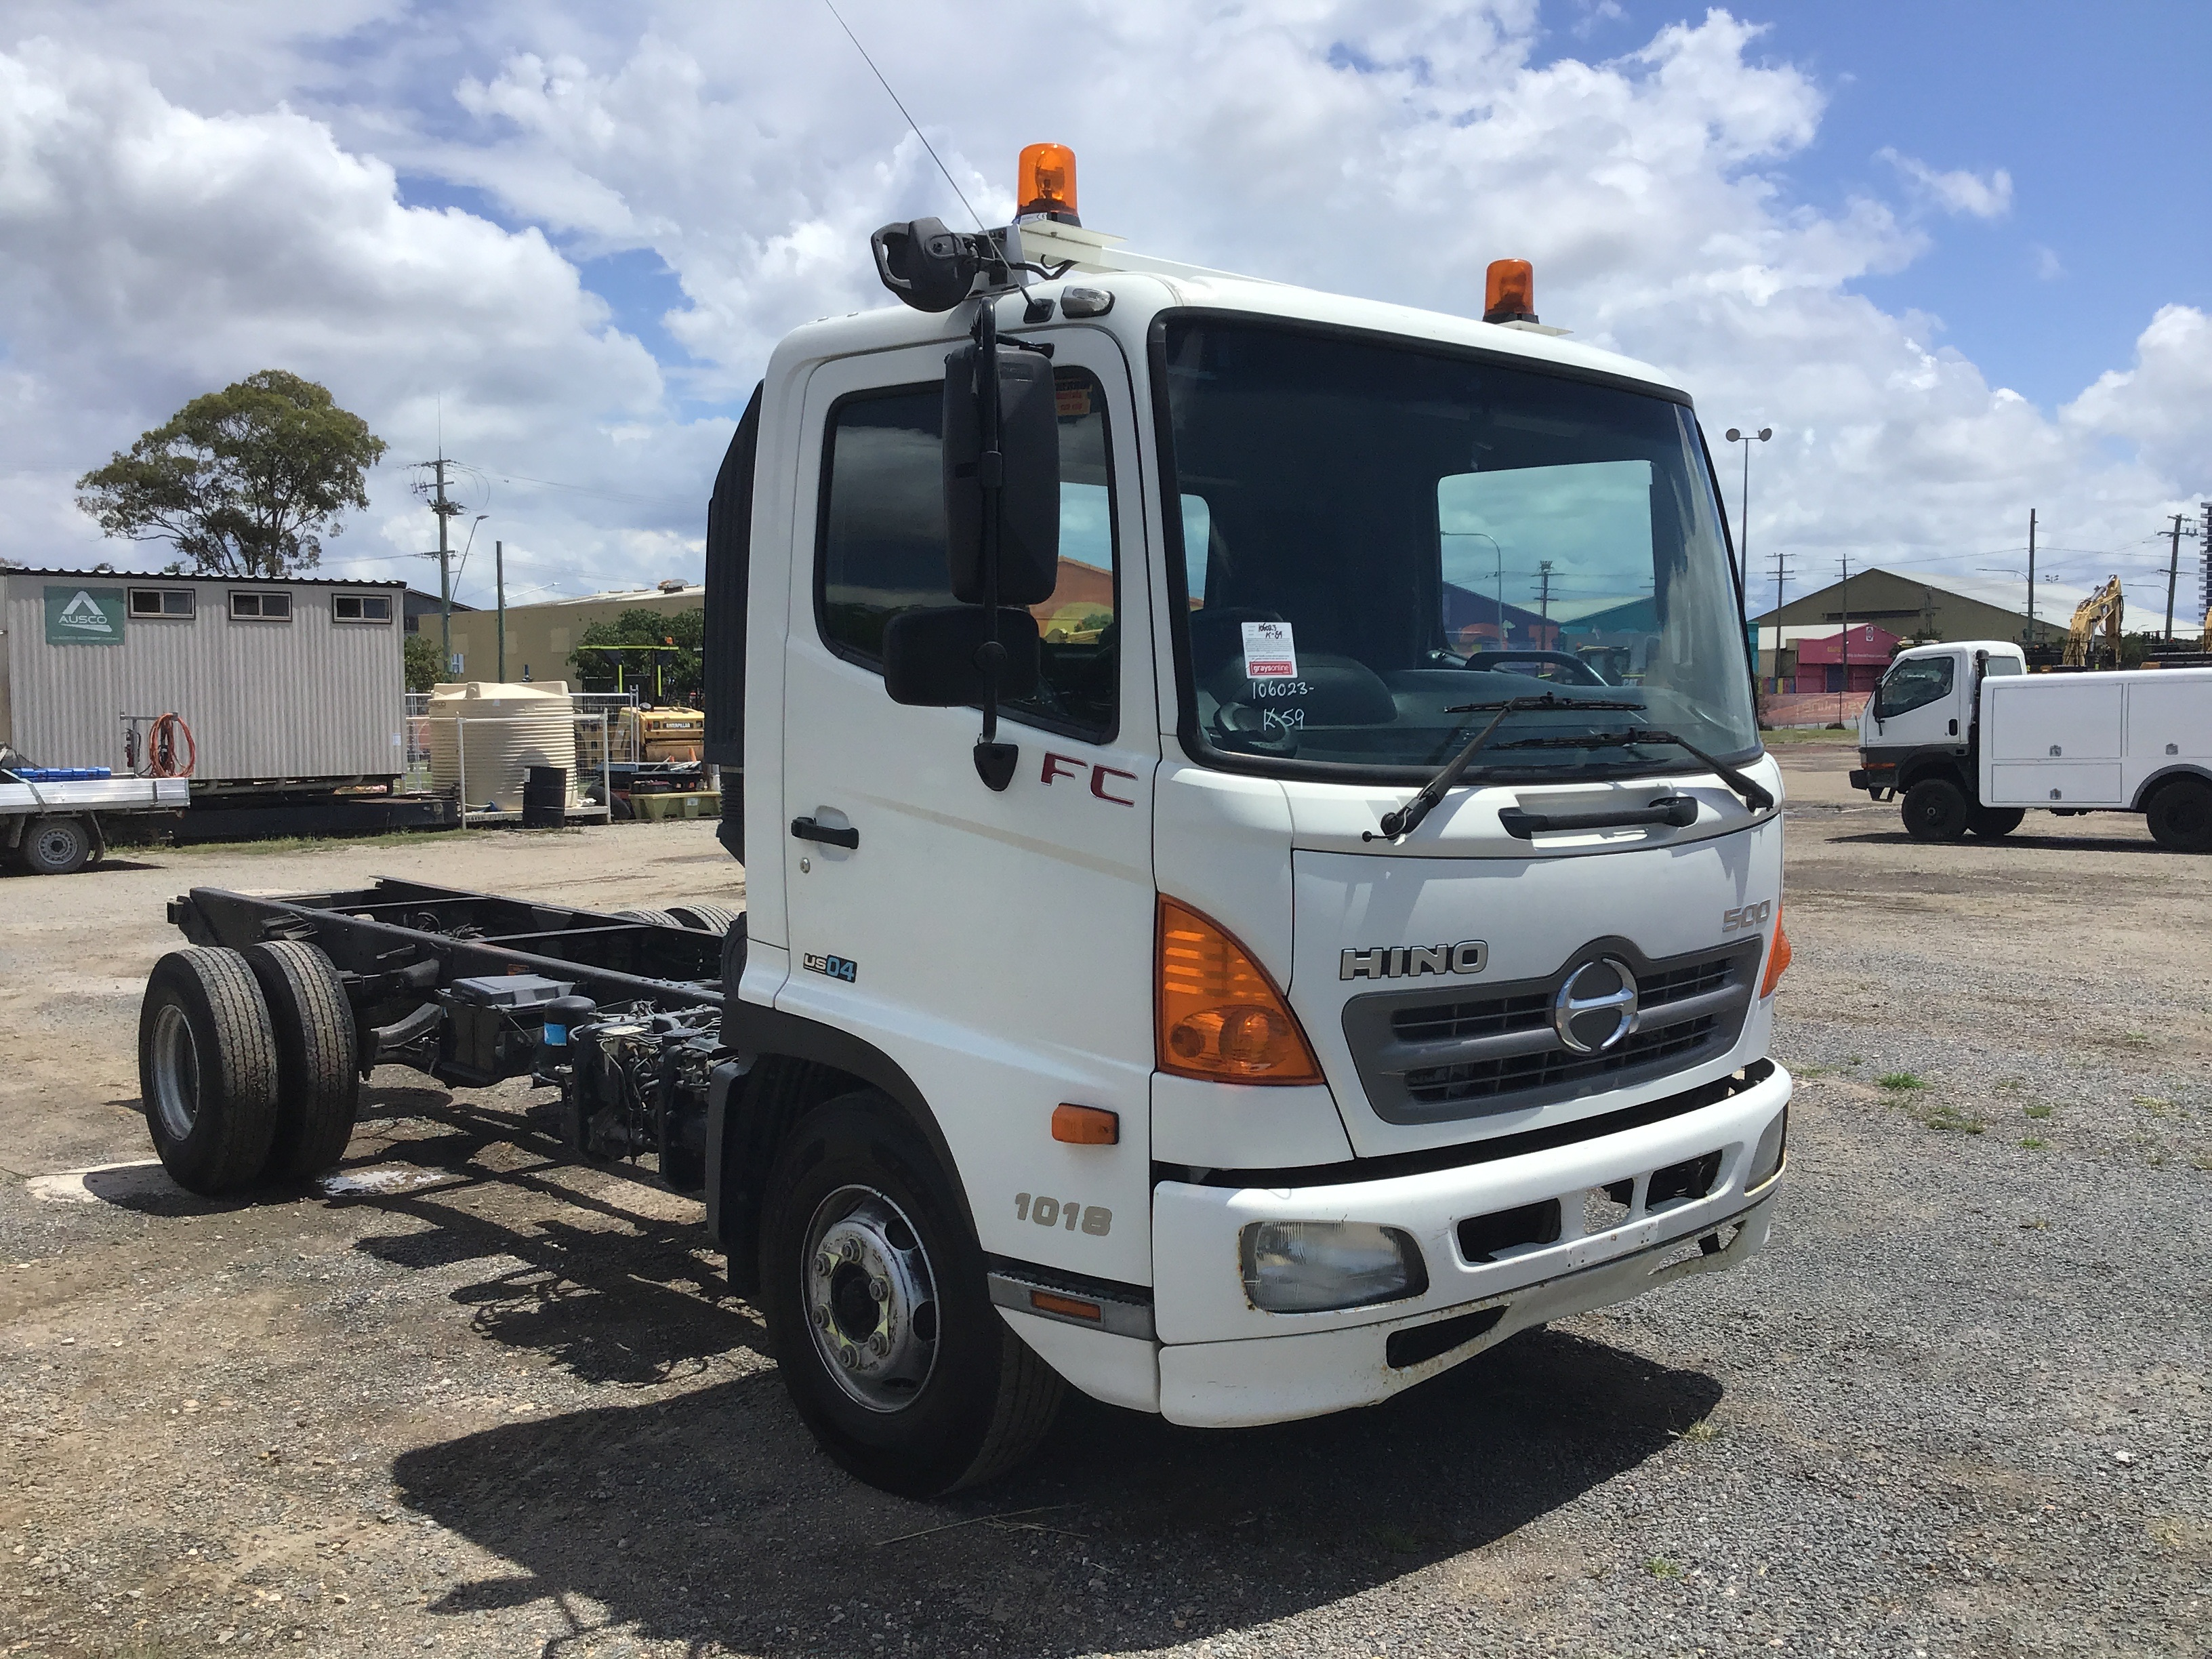 2009 Hino FC 4 x 2 Cab Chassis Truck